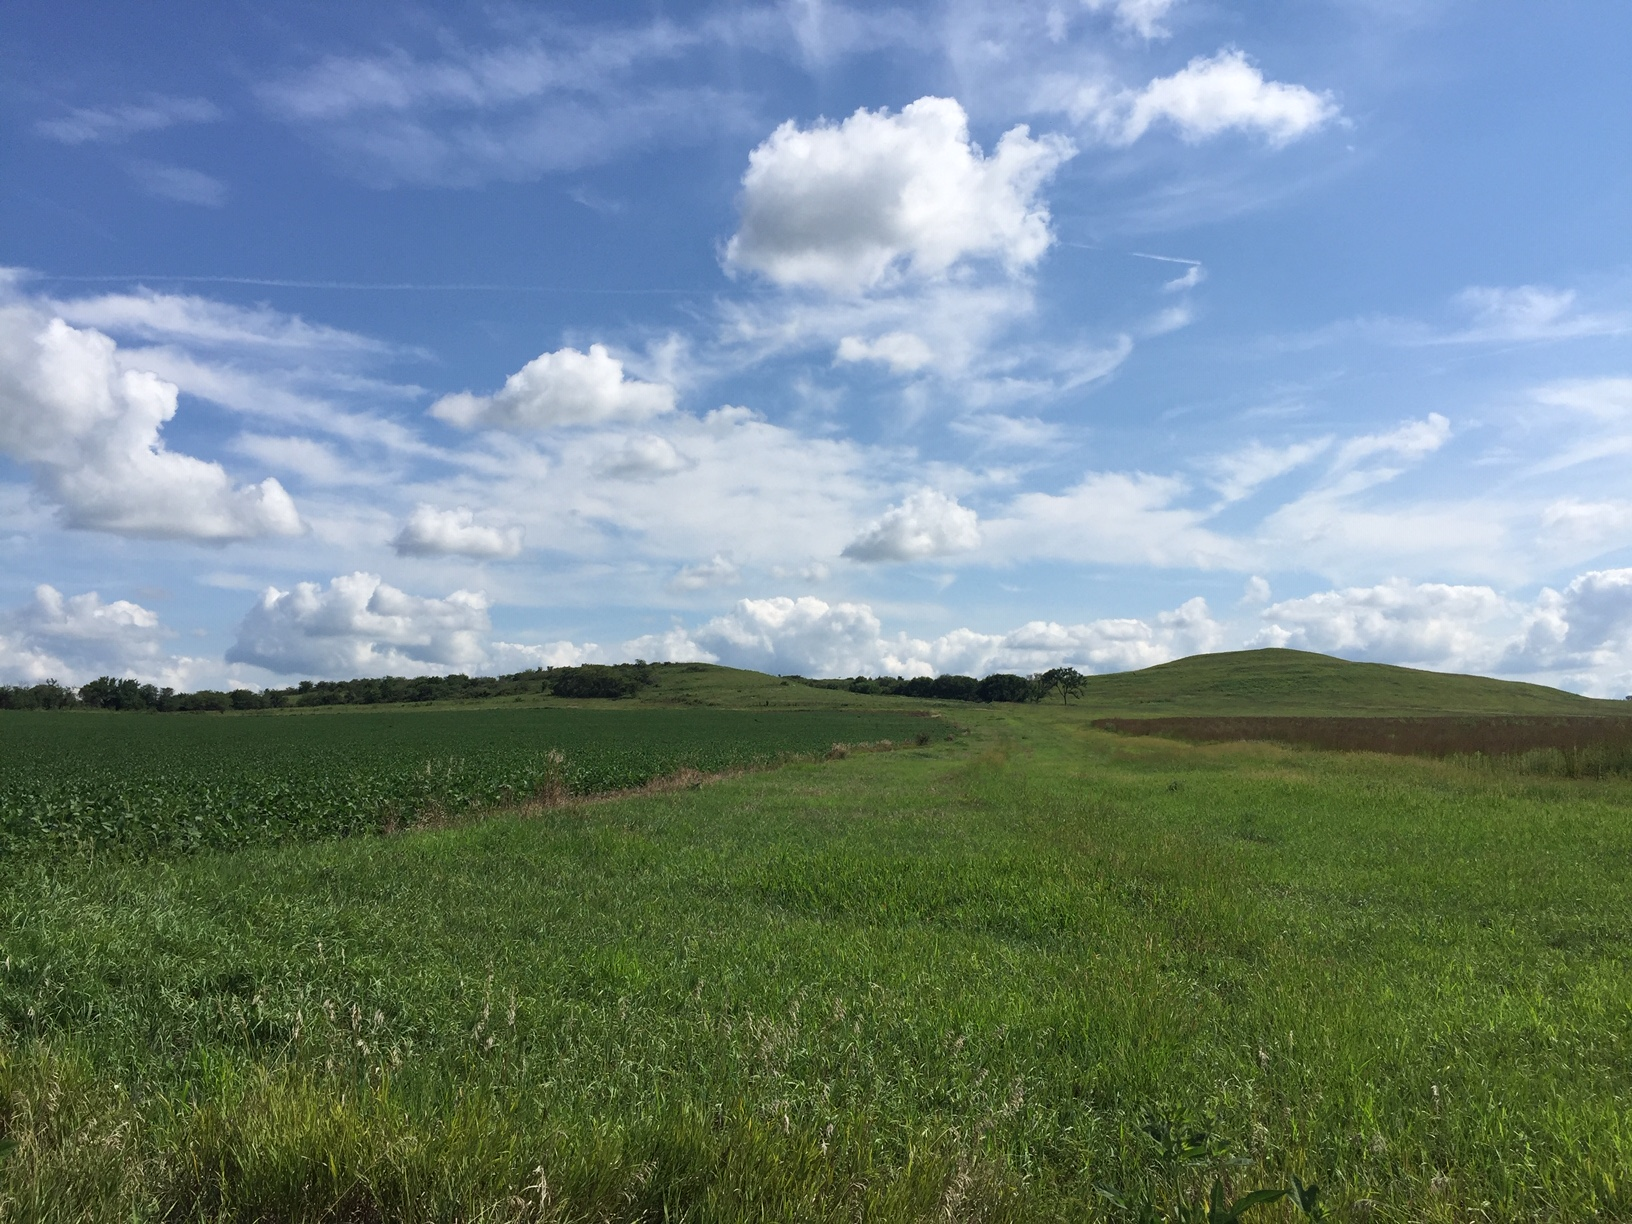 Section of the Flint Hills, south of Wamego (Photo by J. Schafer)